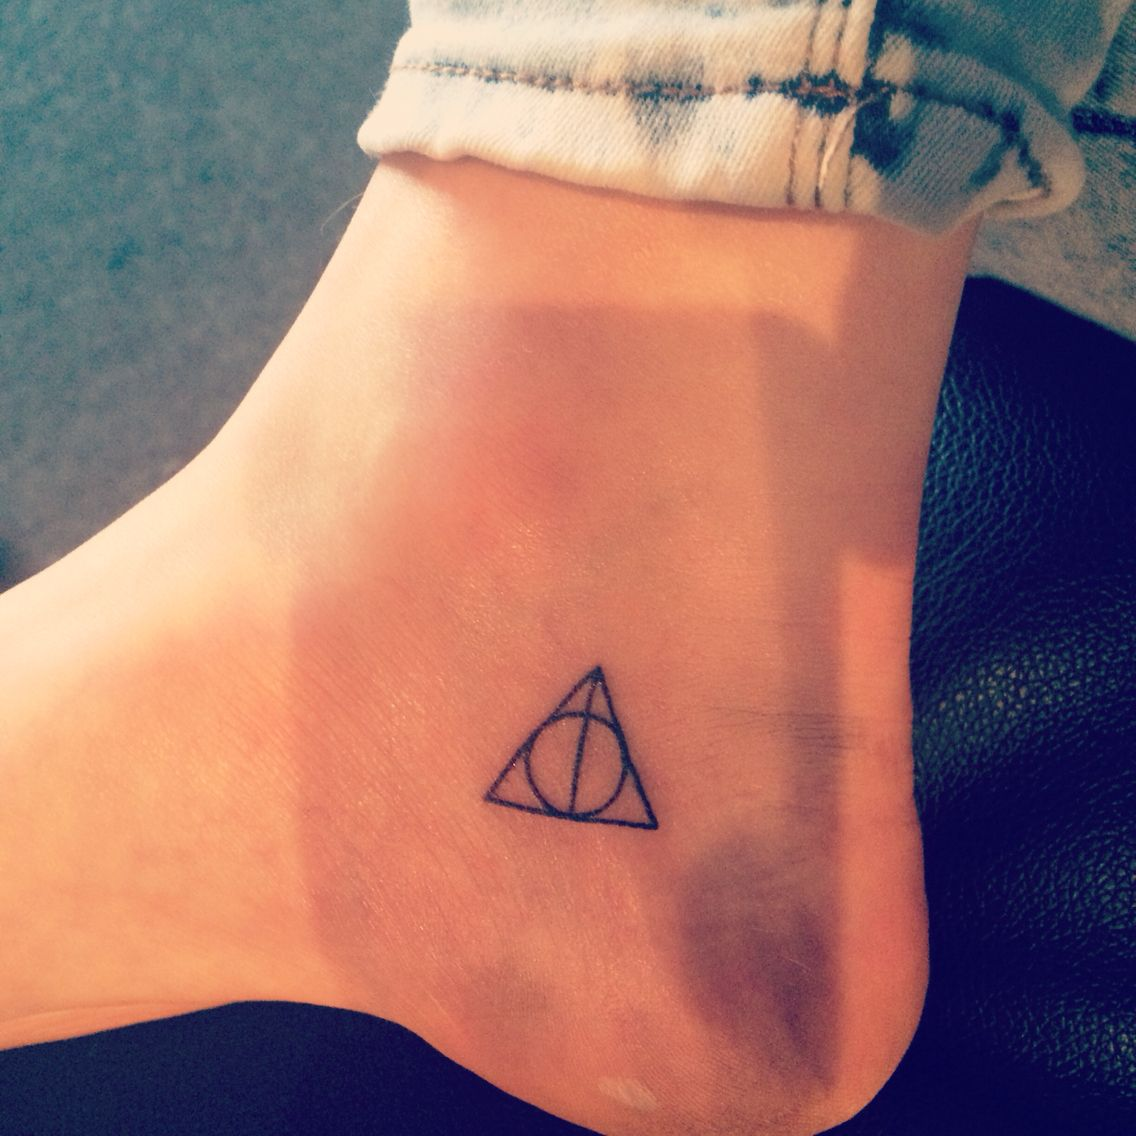 Deathly Hallows Tattoo Tiny Harry Potter Tattoos Inner Ankle Tattoos Foot Tattoos